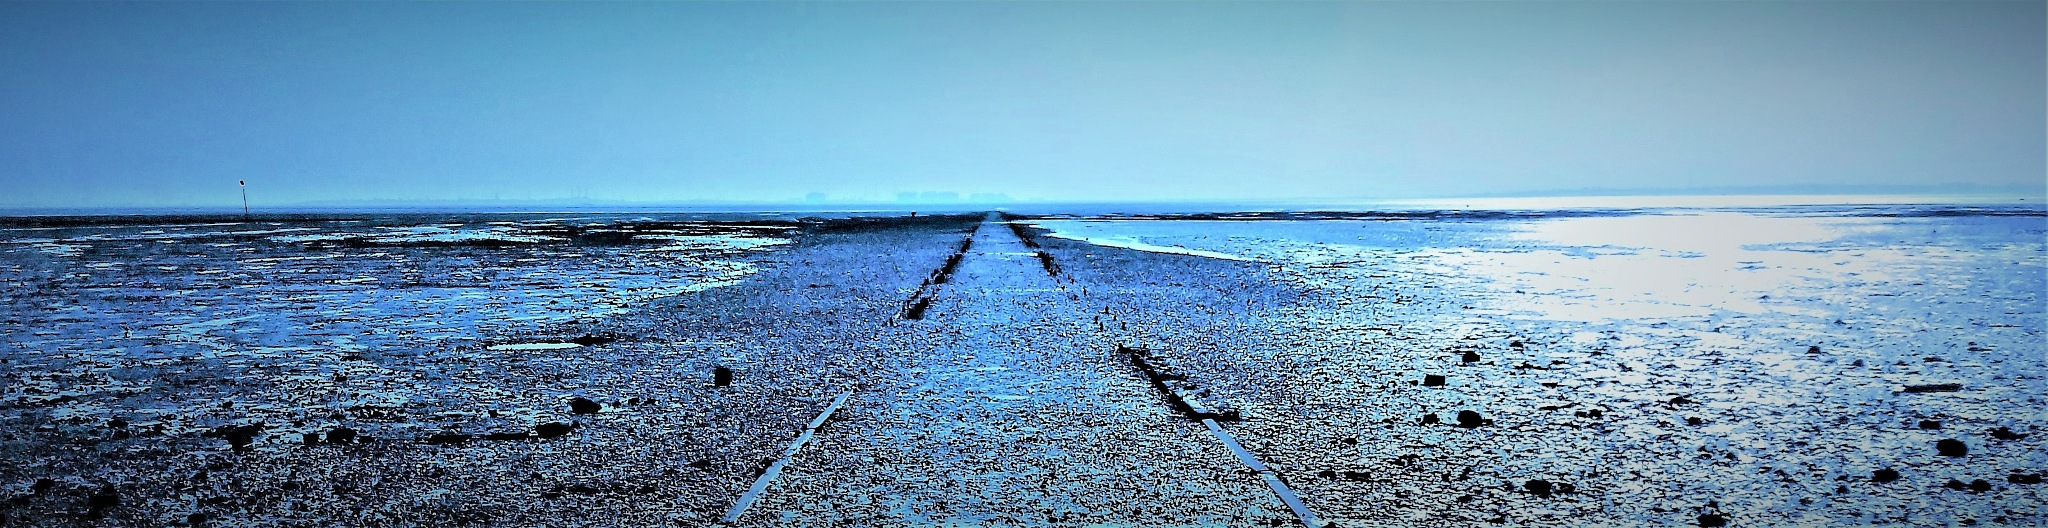 Road to Nowhere by Johnners8